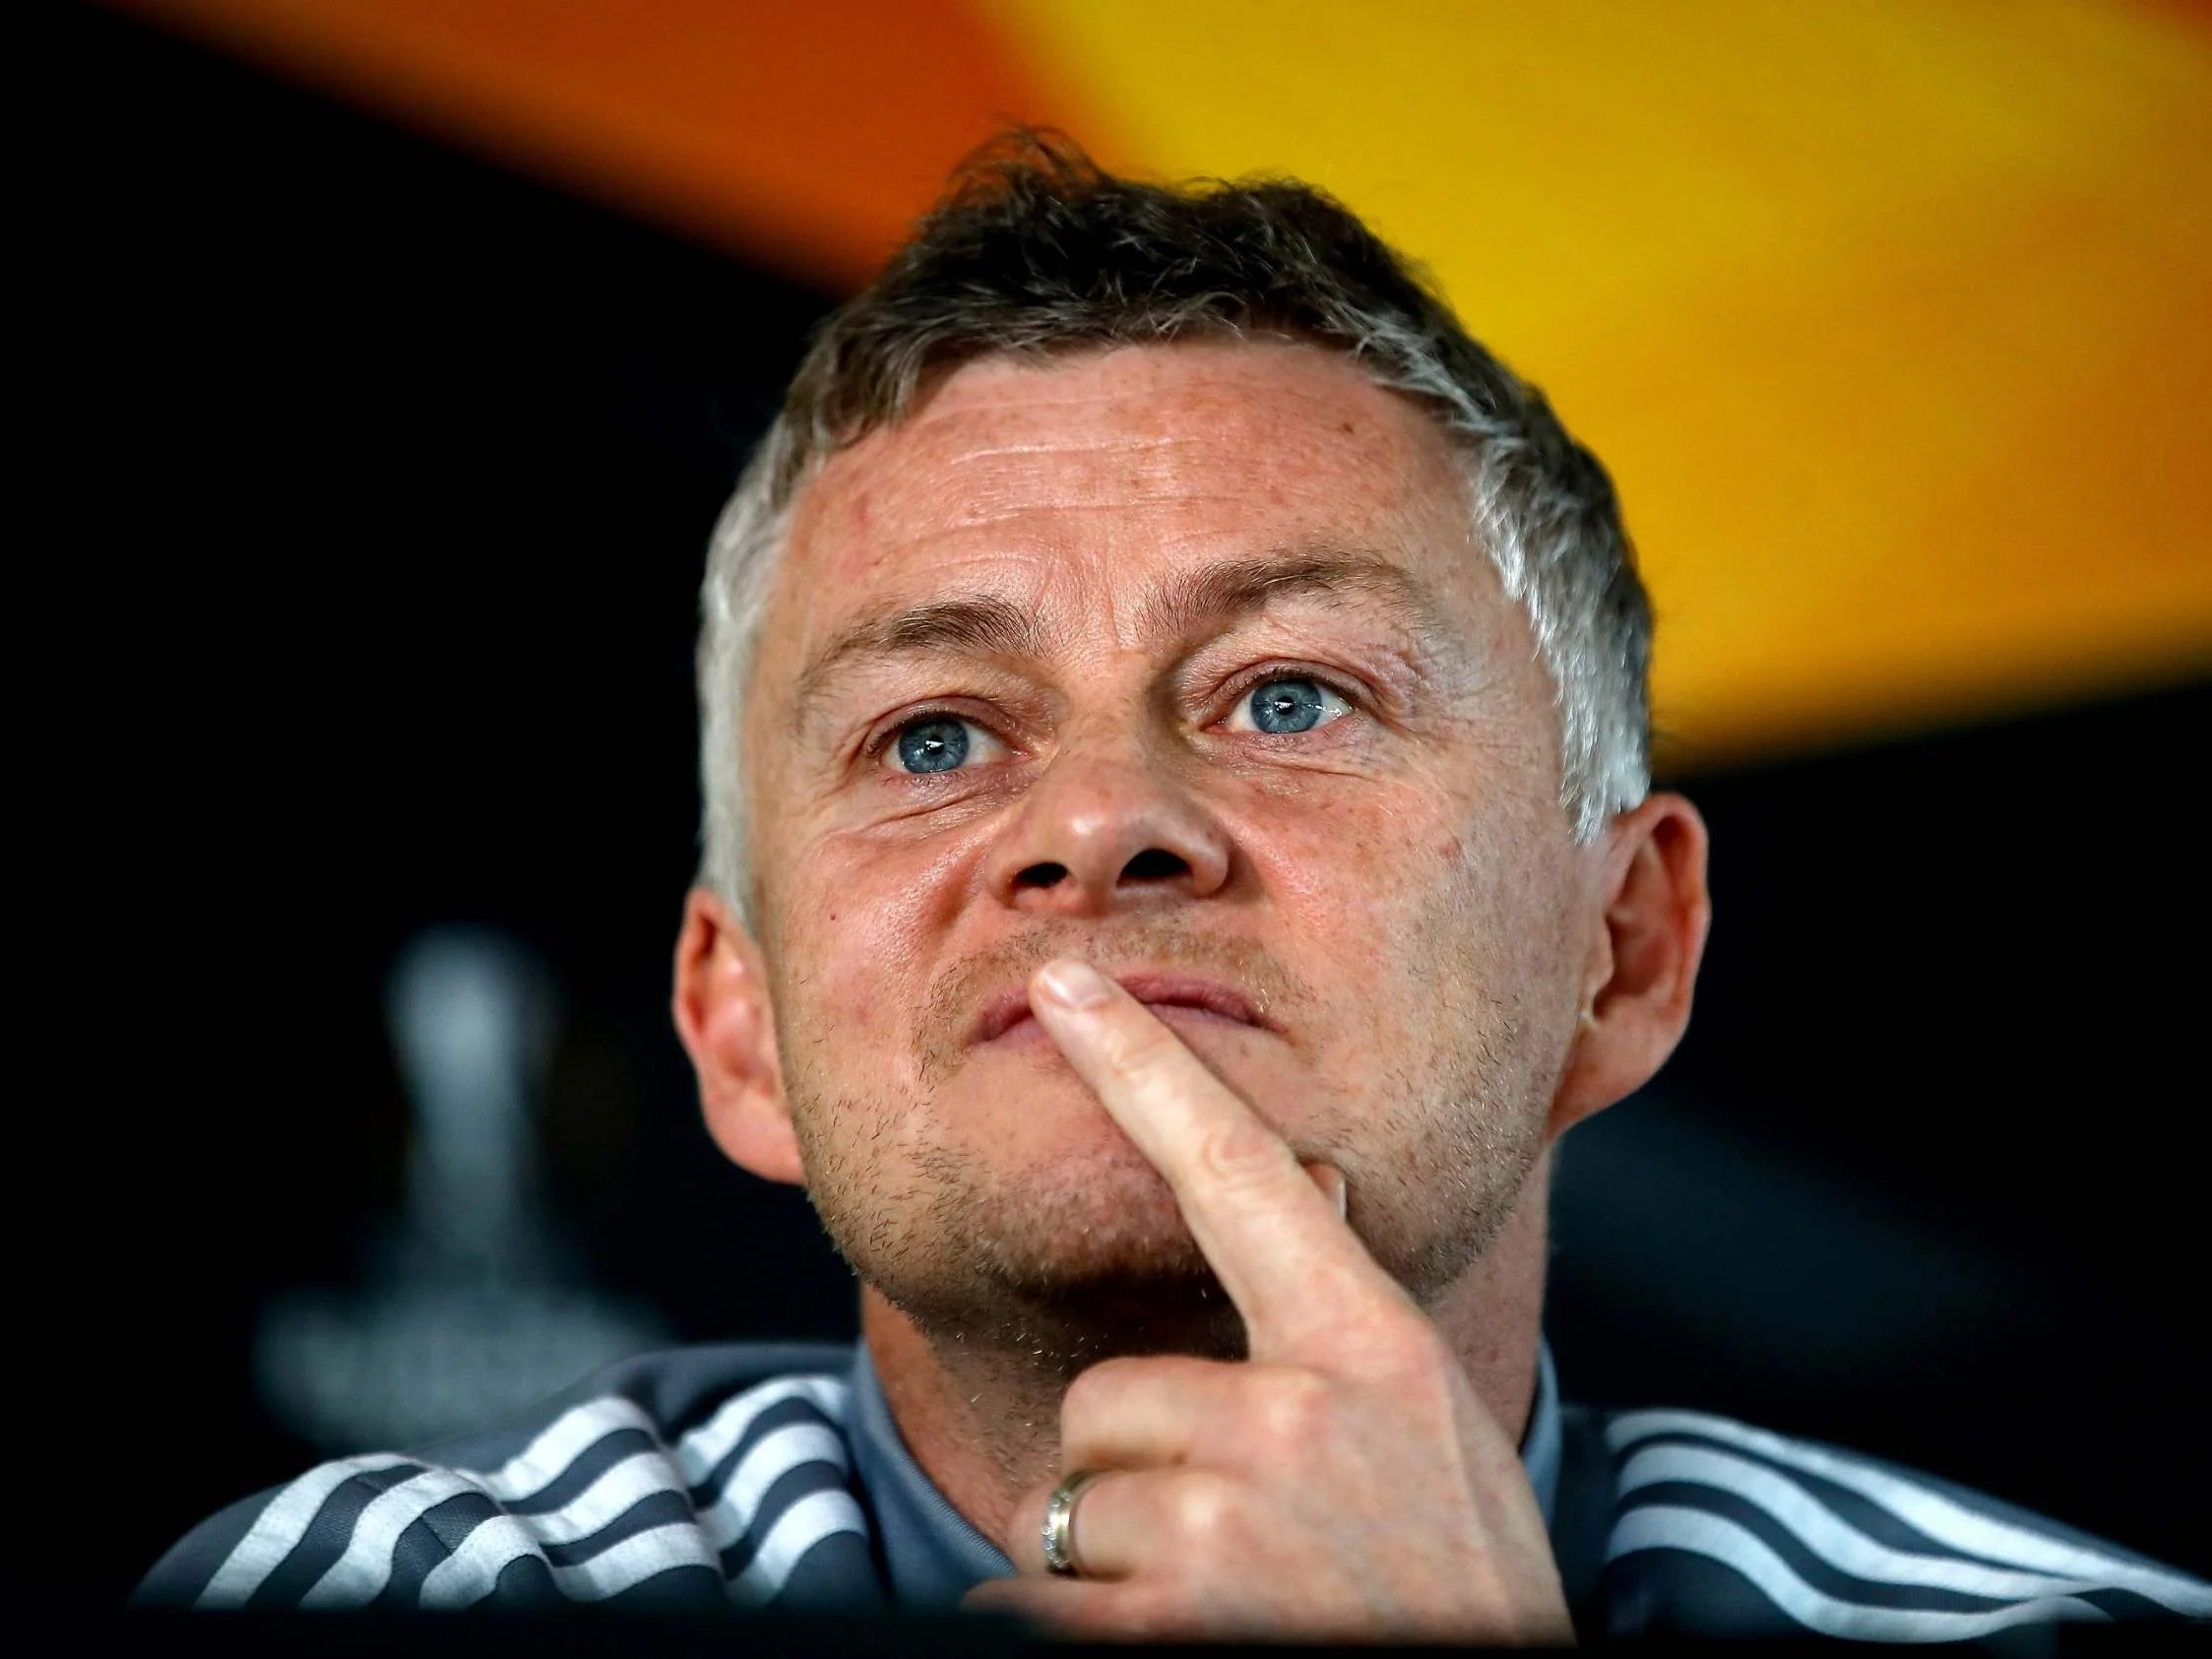 Ole Gunnar Solskjaer wants maximum points to send Manchester United into Champions League 8